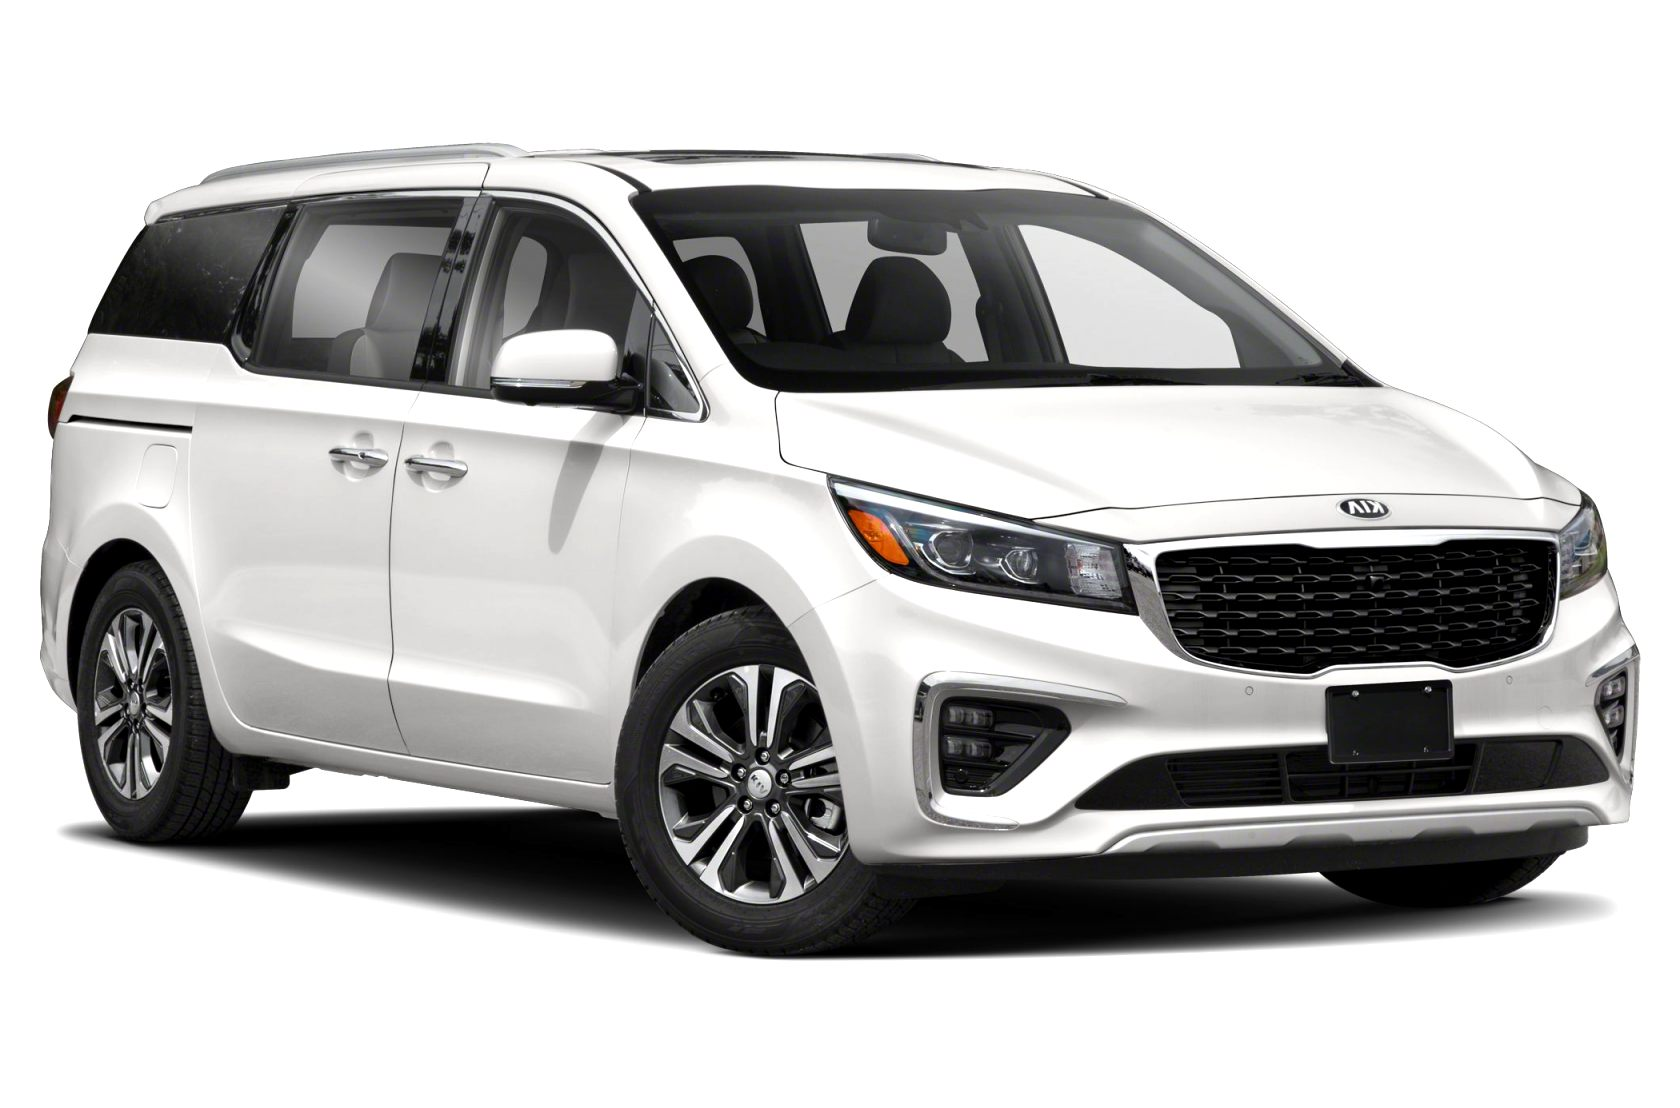 kia a sedona 2020 Price and Review